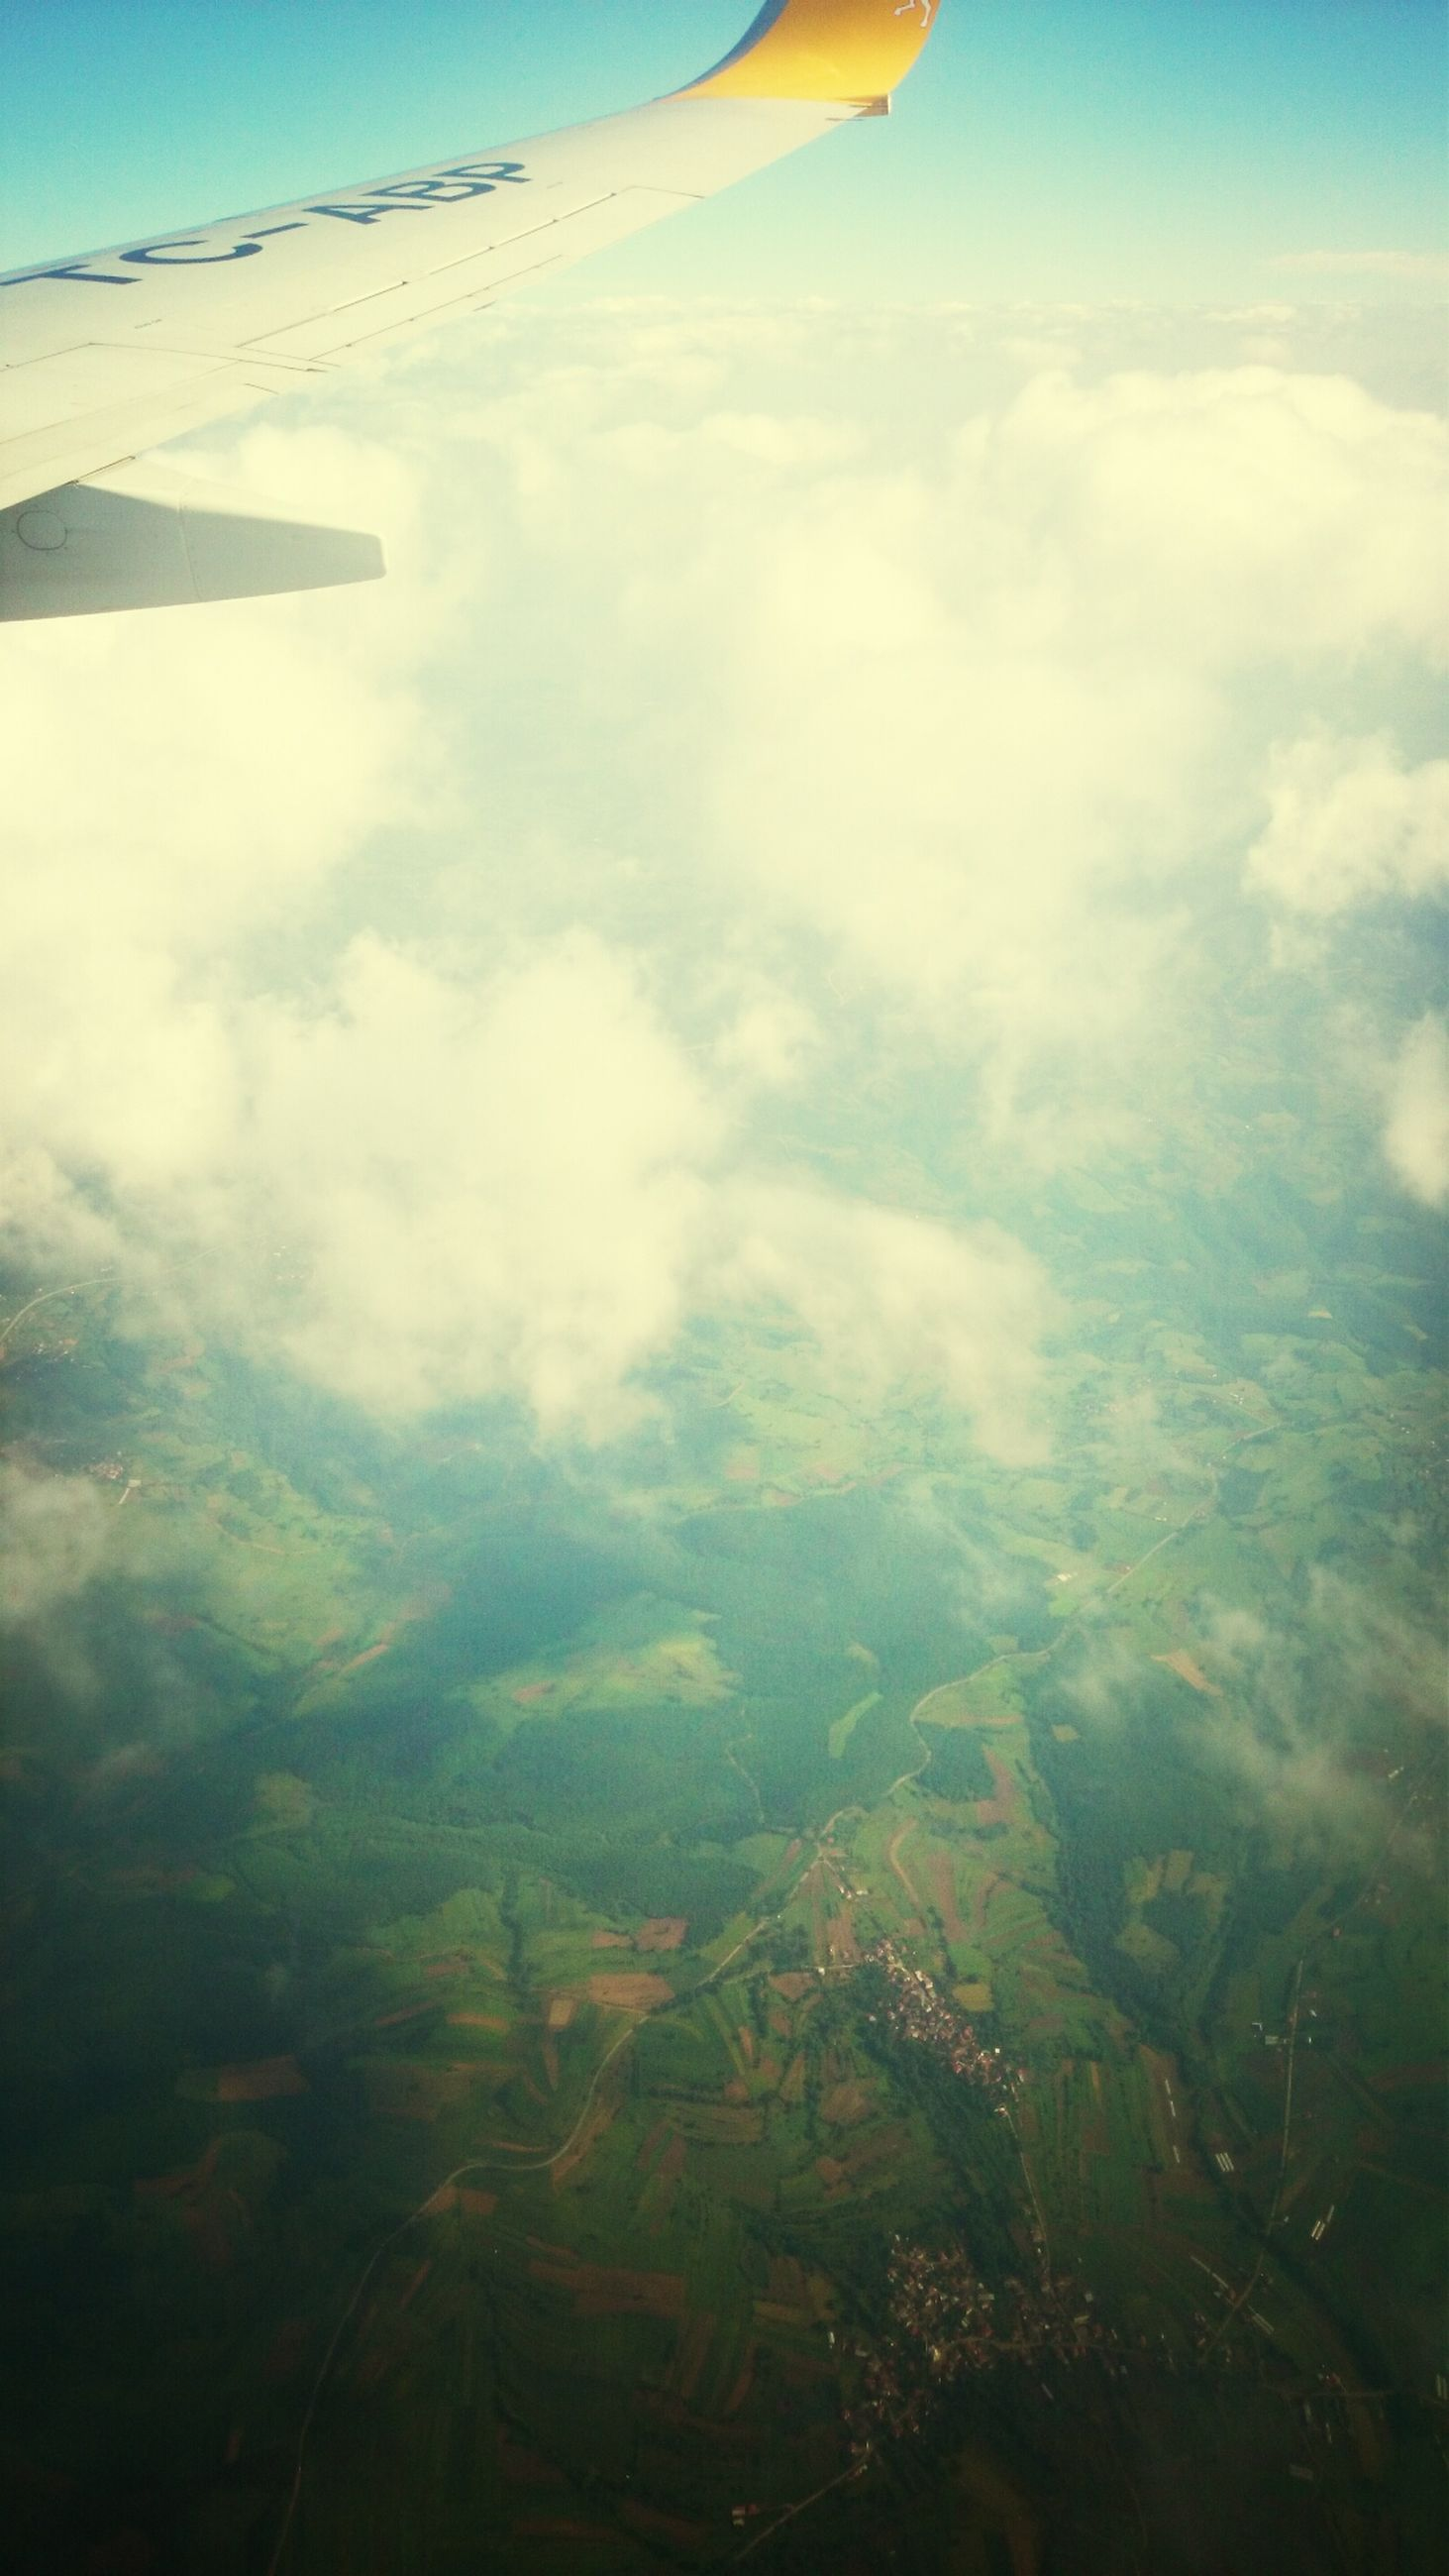 aerial view, airplane, sky, flying, landscape, air vehicle, aircraft wing, scenics, transportation, beauty in nature, cloud - sky, tranquility, part of, tranquil scene, mid-air, nature, mode of transport, cloud, cropped, travel